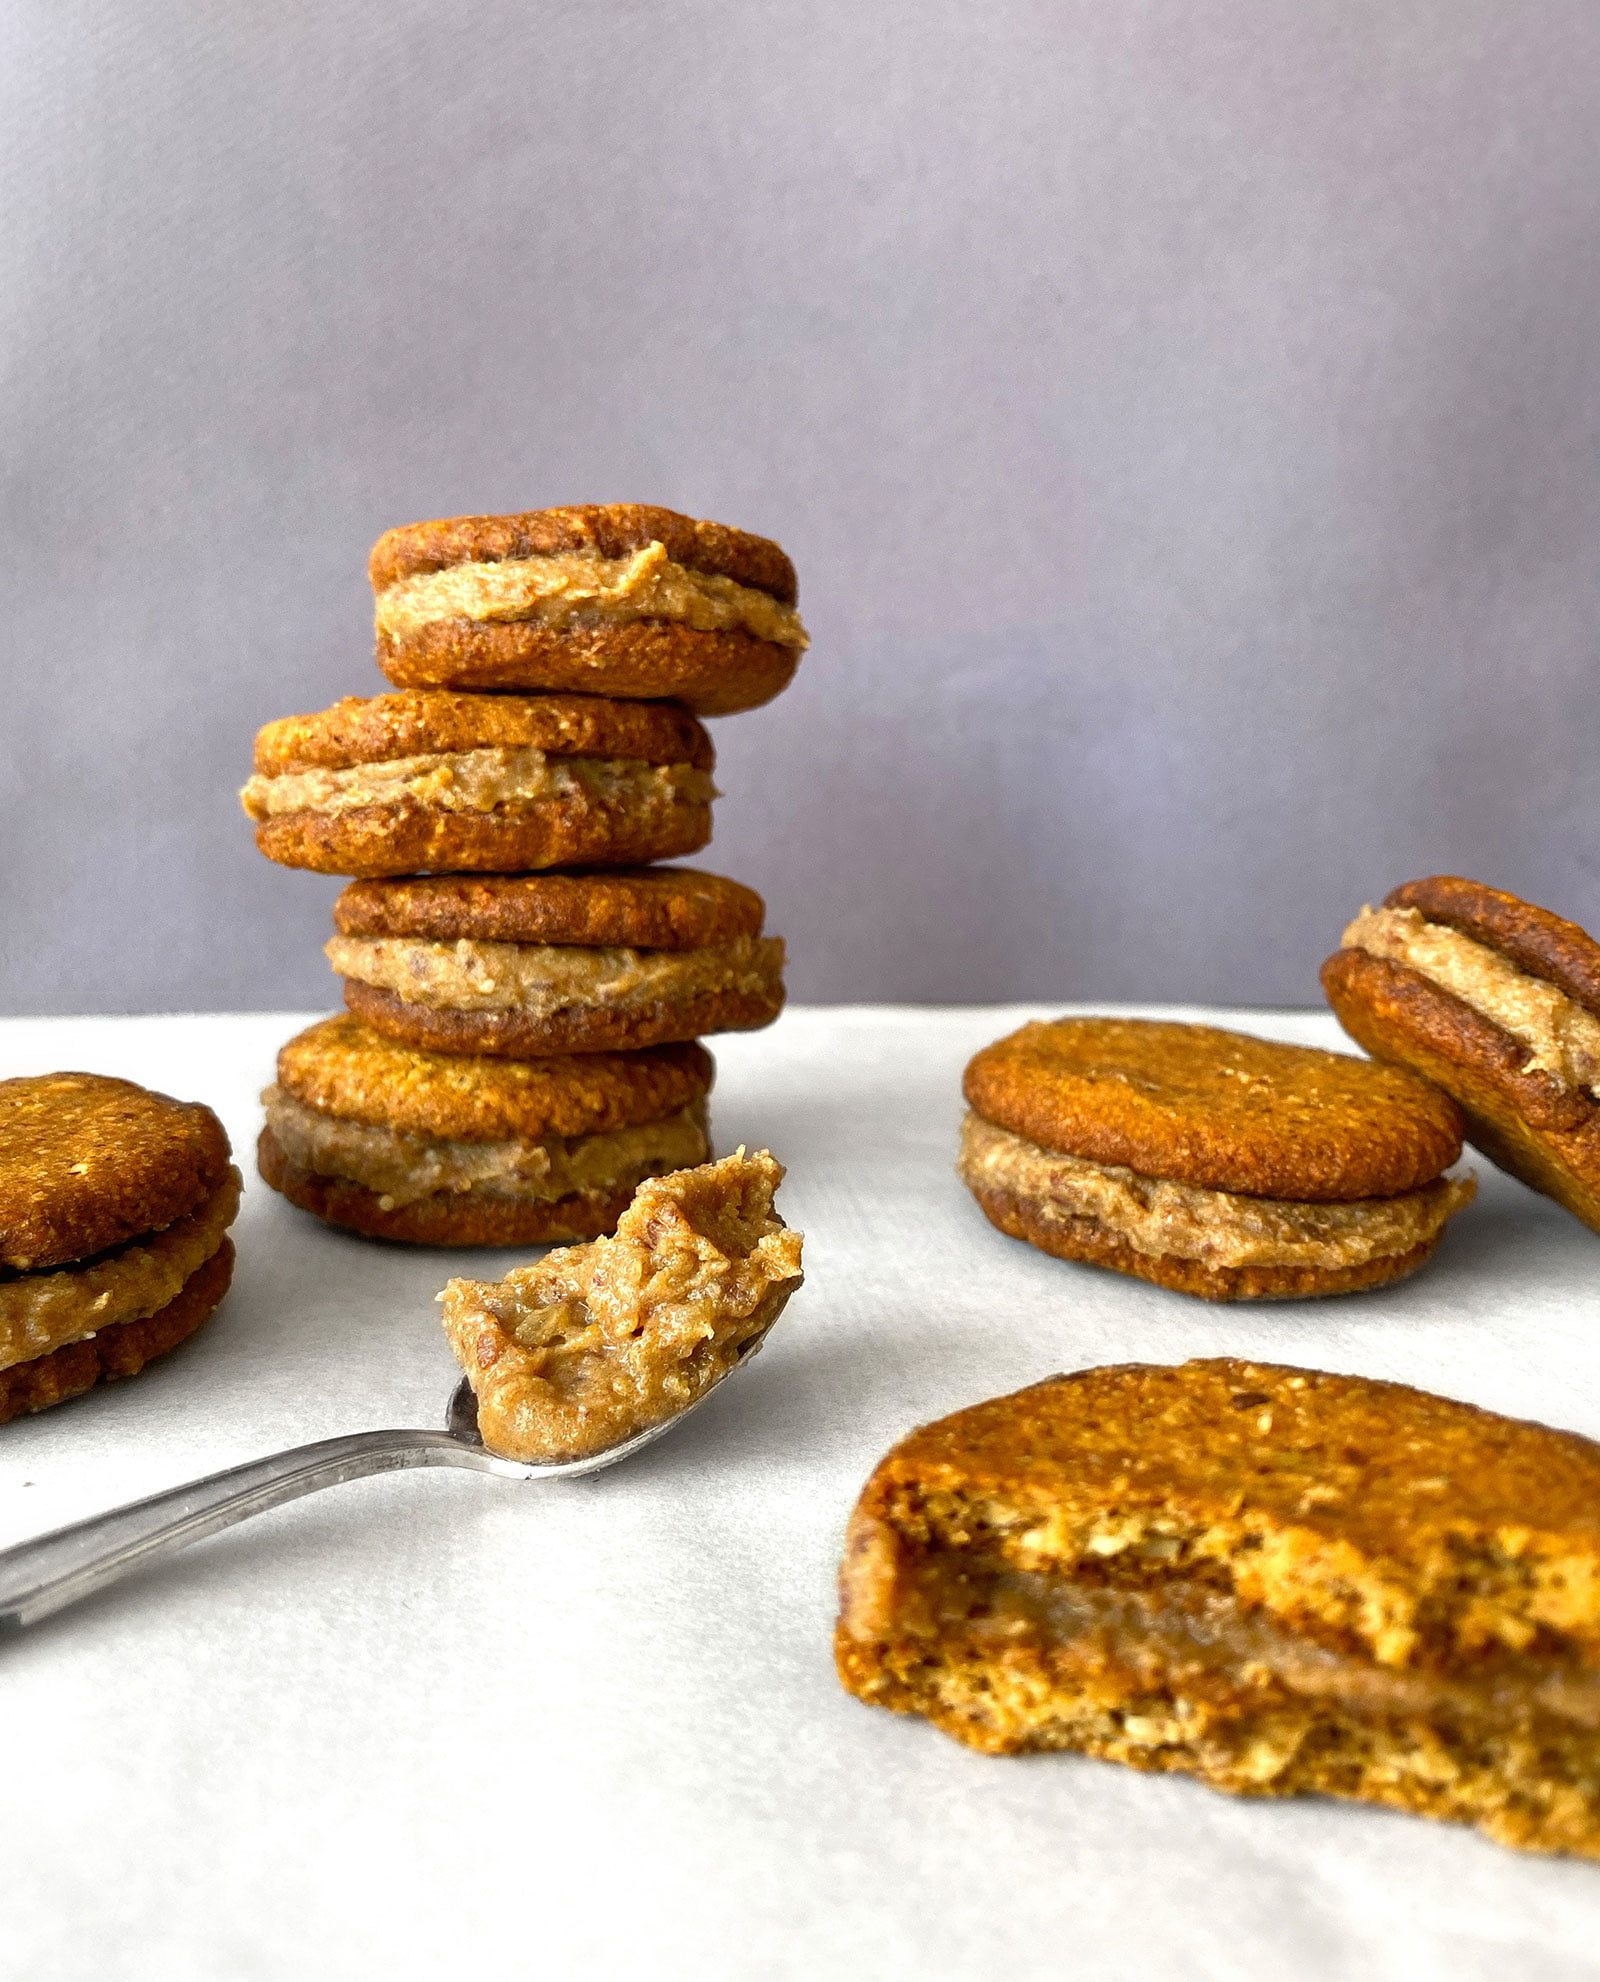 oat-almont-and-caramel-cookie-sandwiches